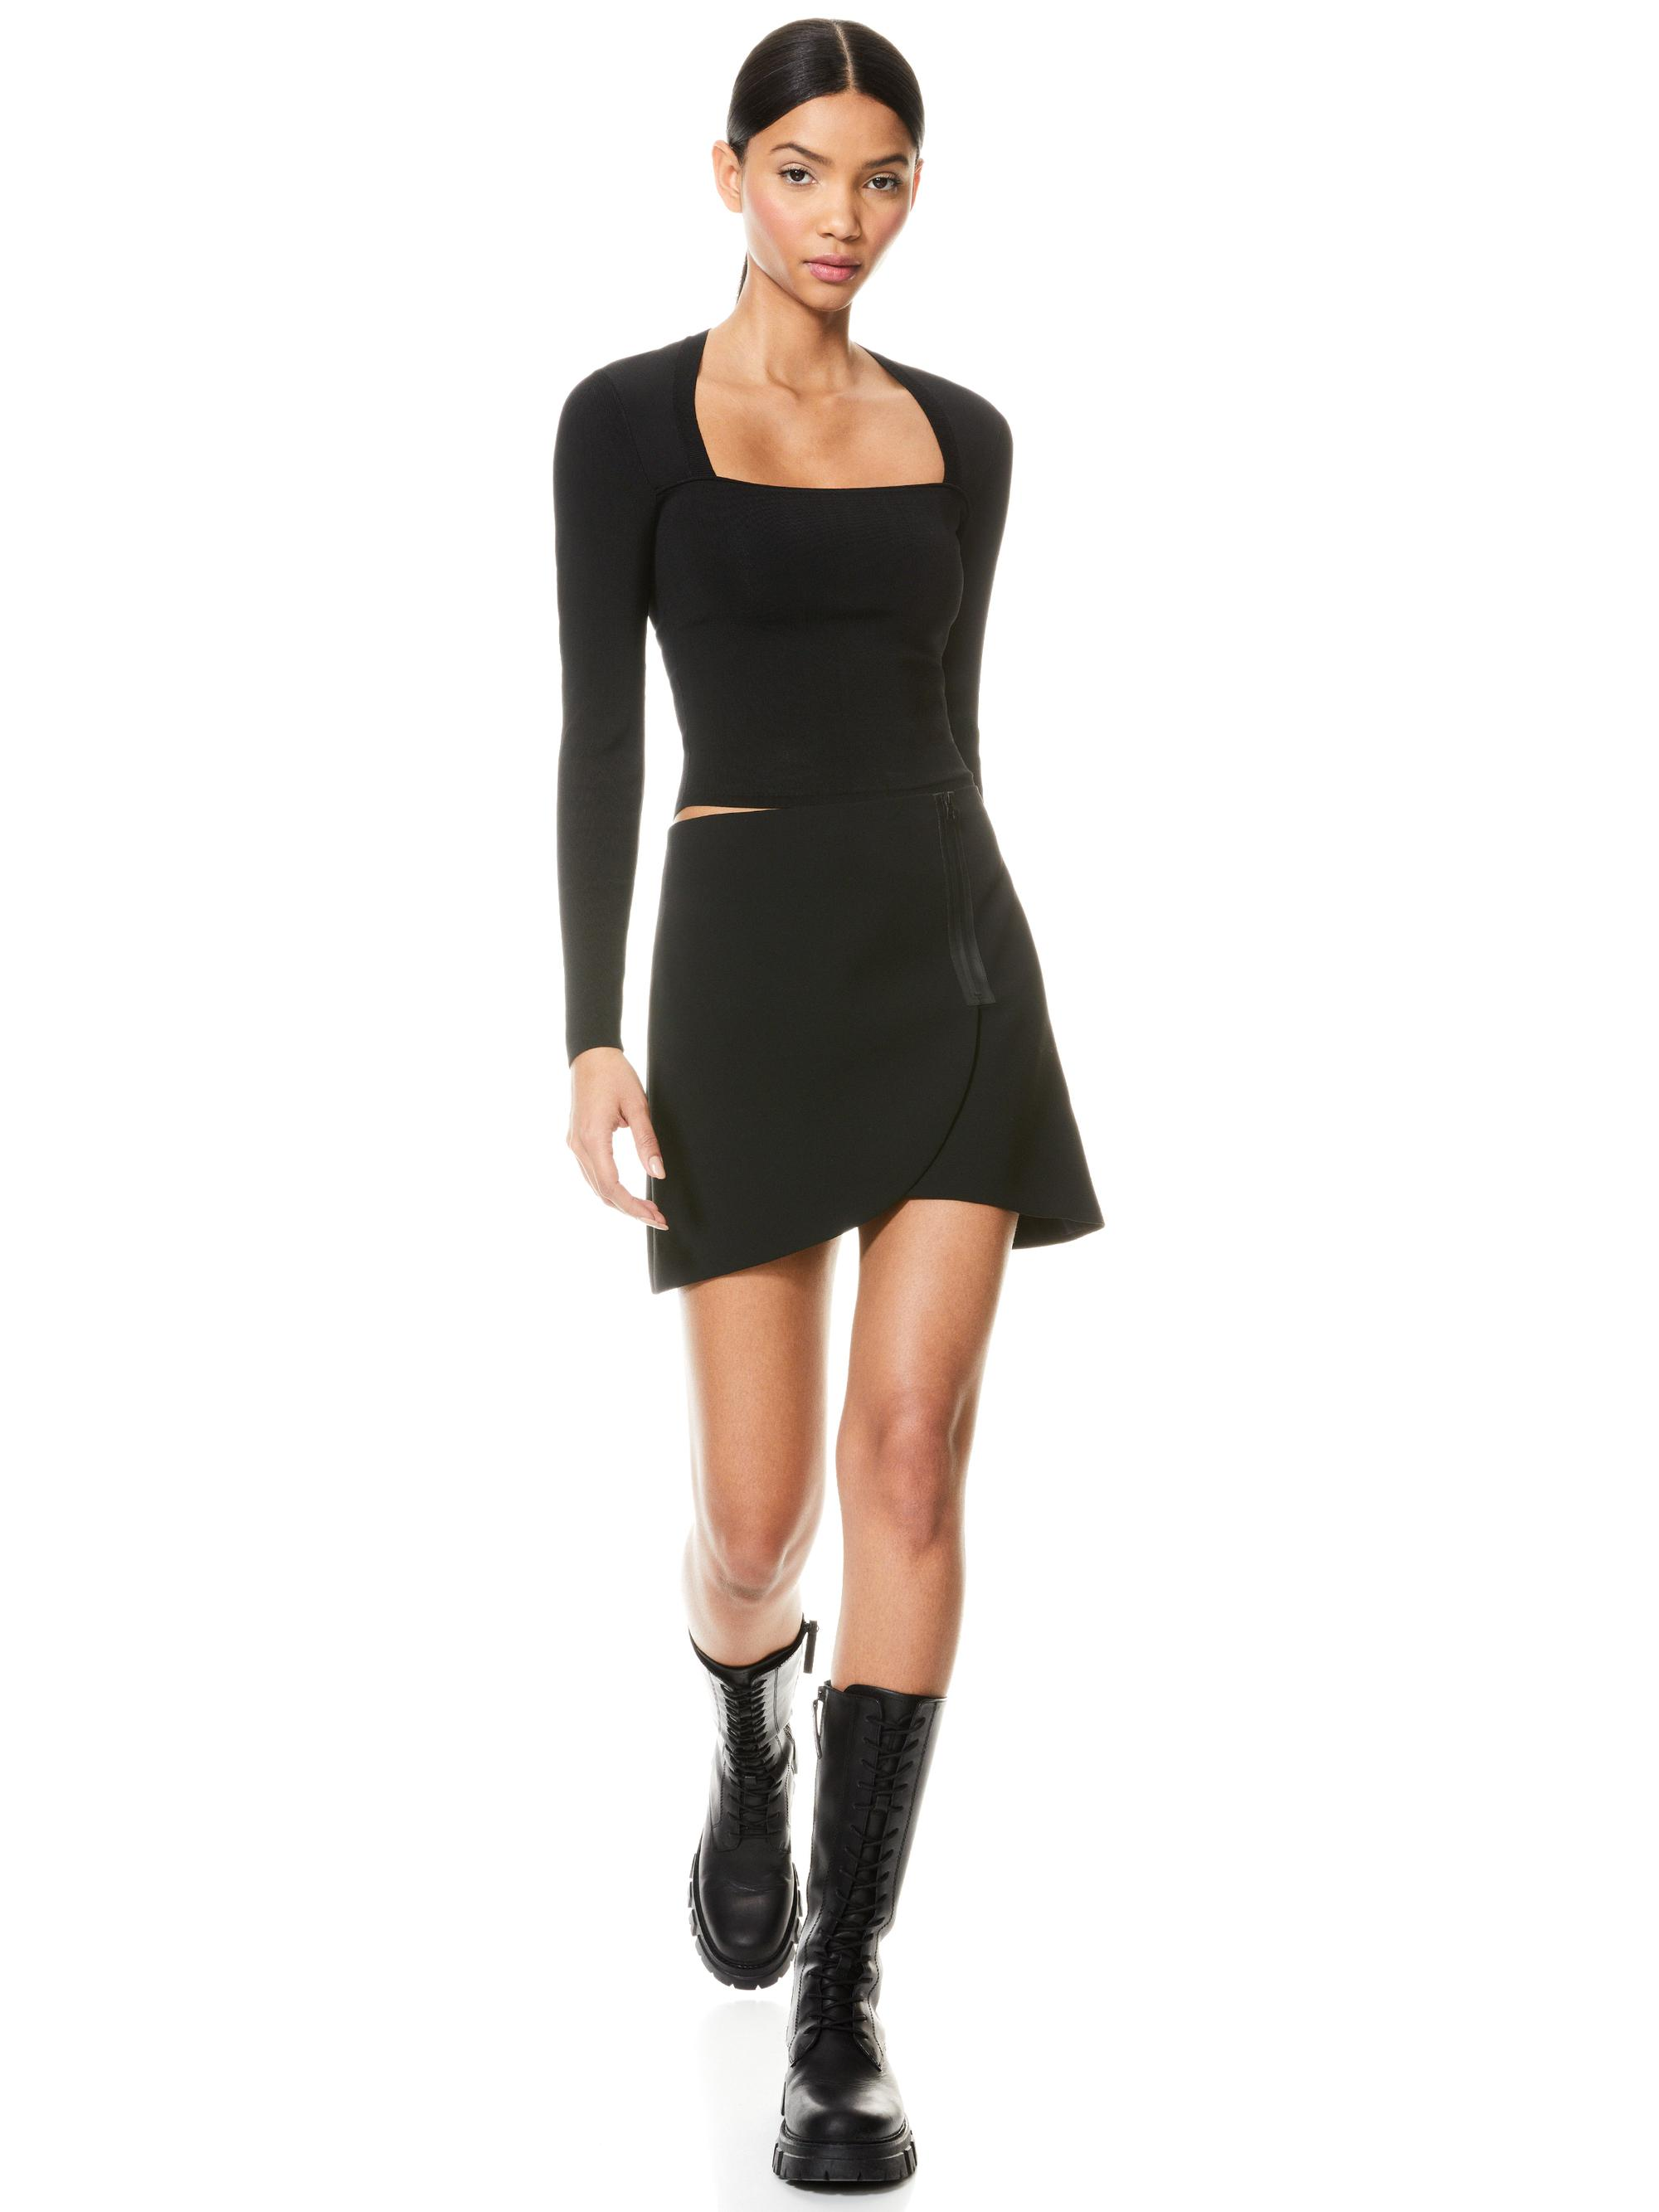 RICARDA CUT OUT TOP 2